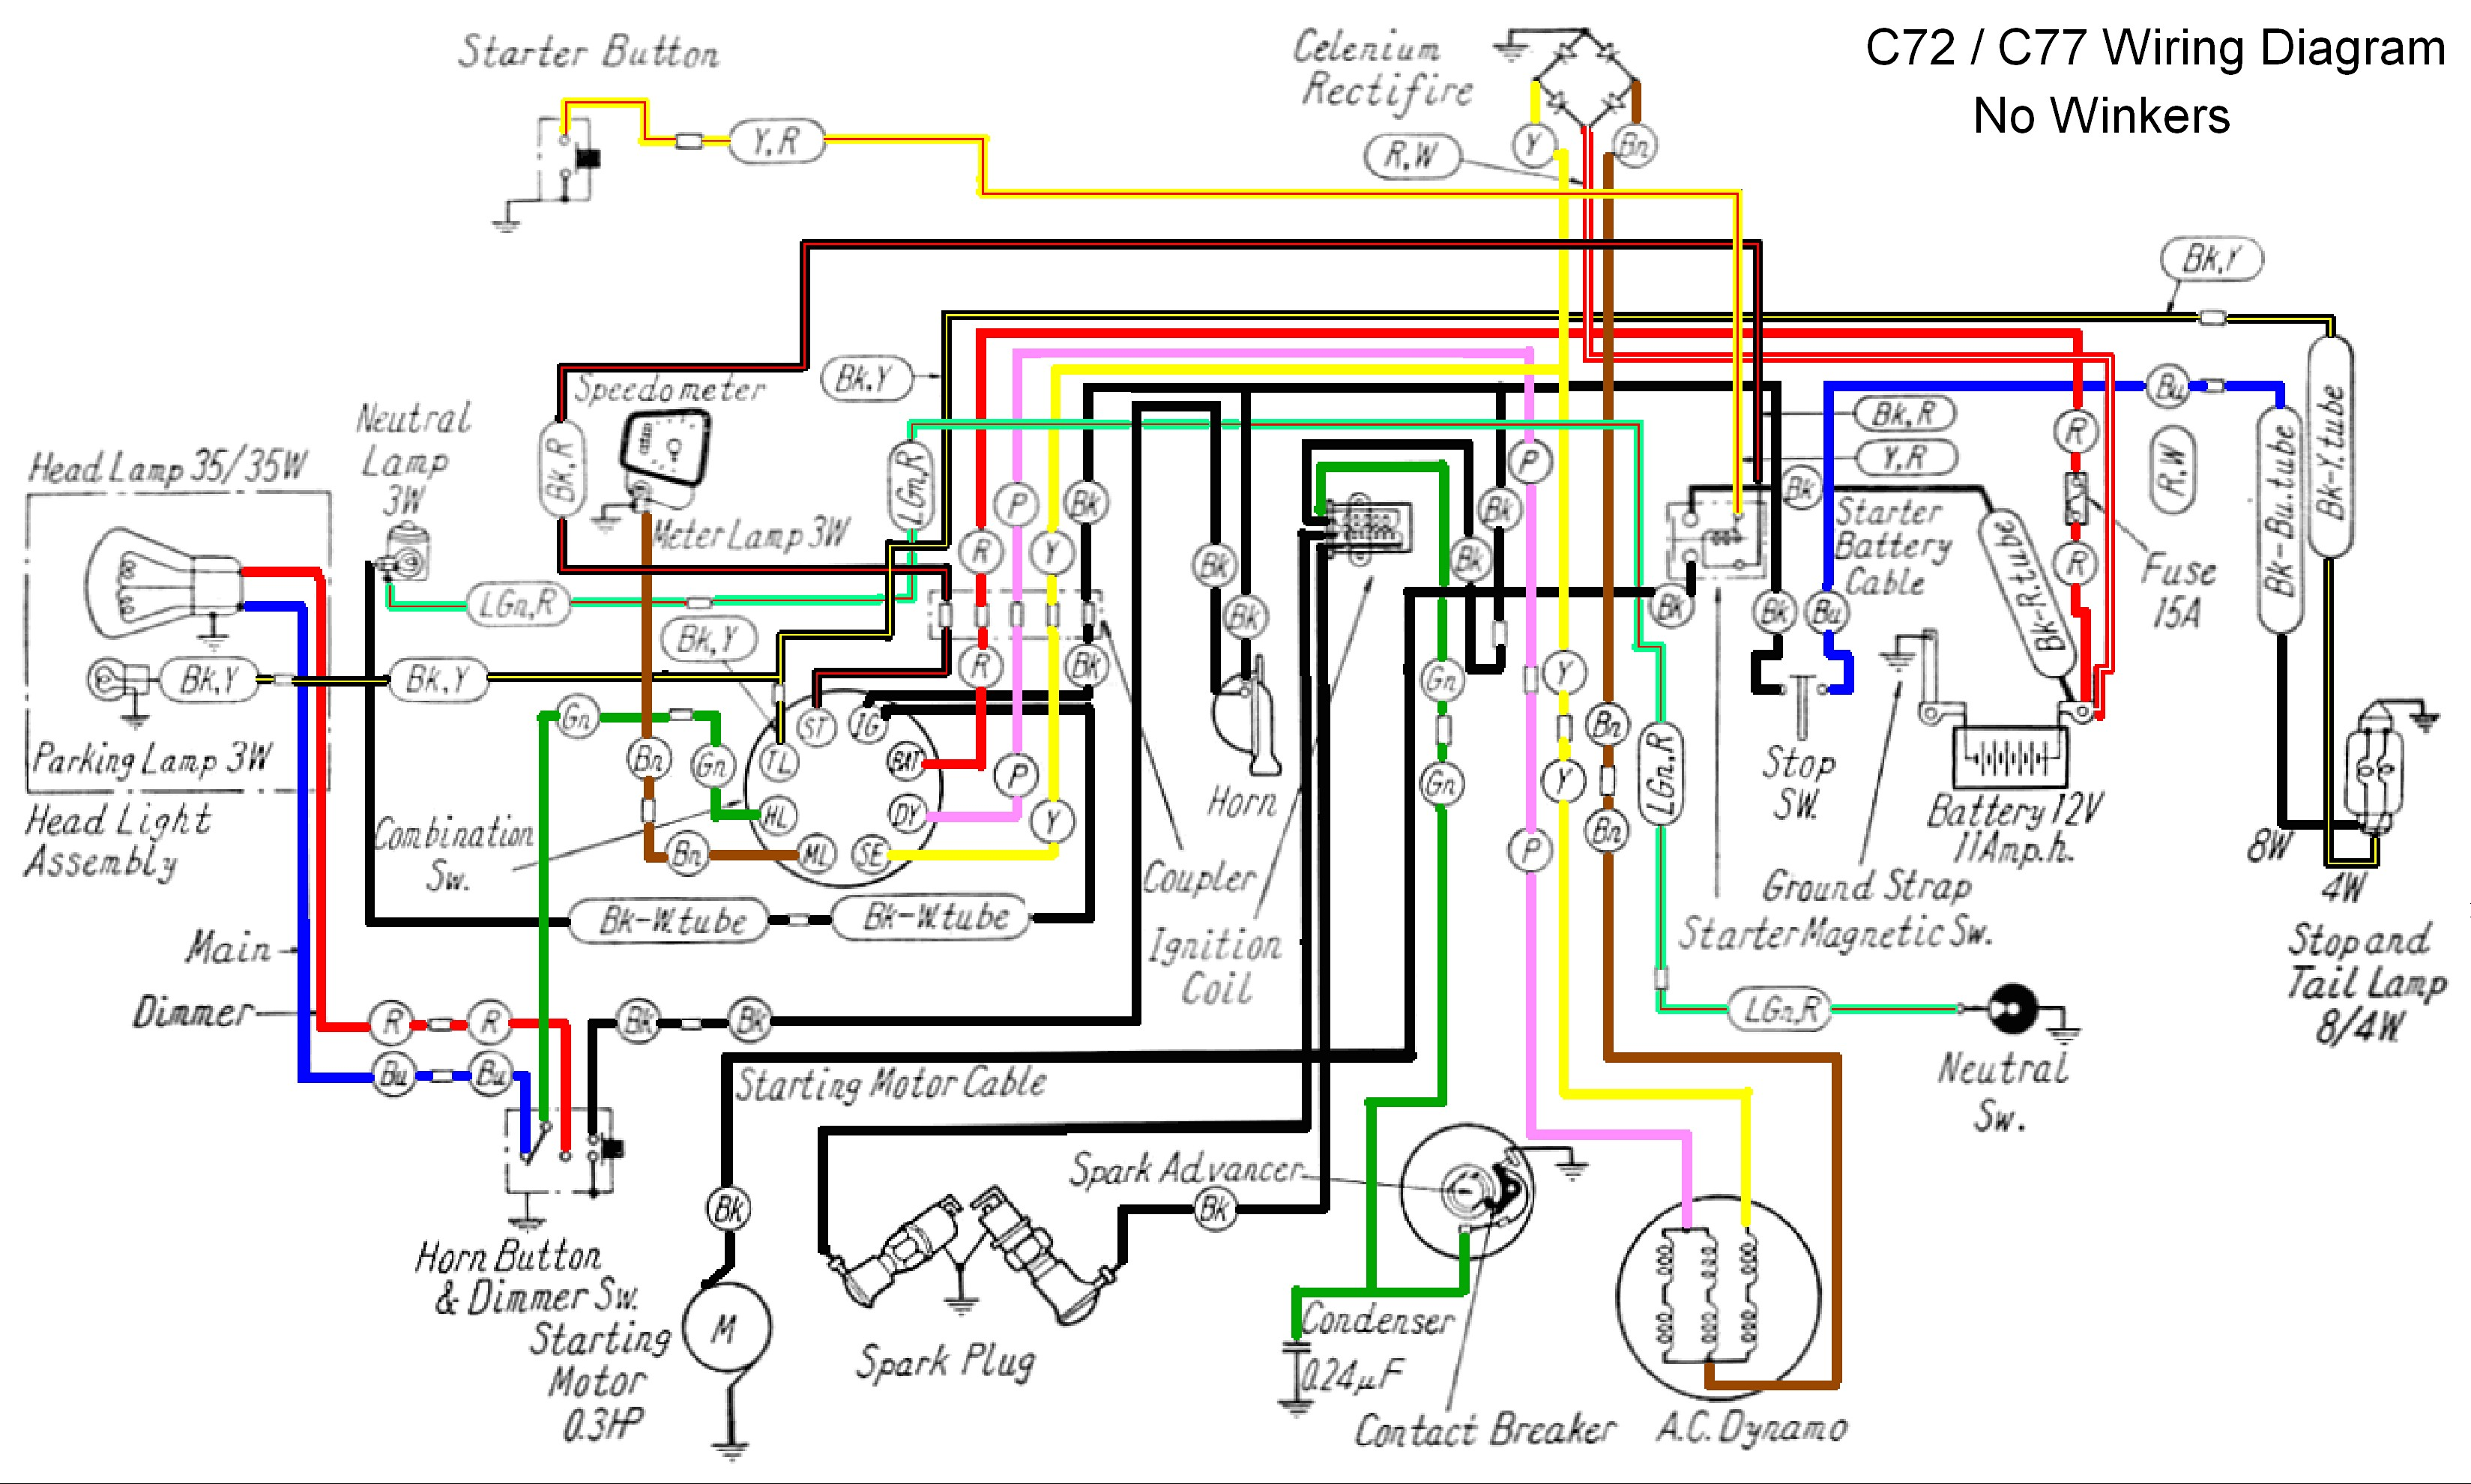 1976 cb 750 wiring diagram today wiring diagramcb700sc wiring diagram wiring diagram 1976 cb 750 parts 1976 cb 750 wiring diagram